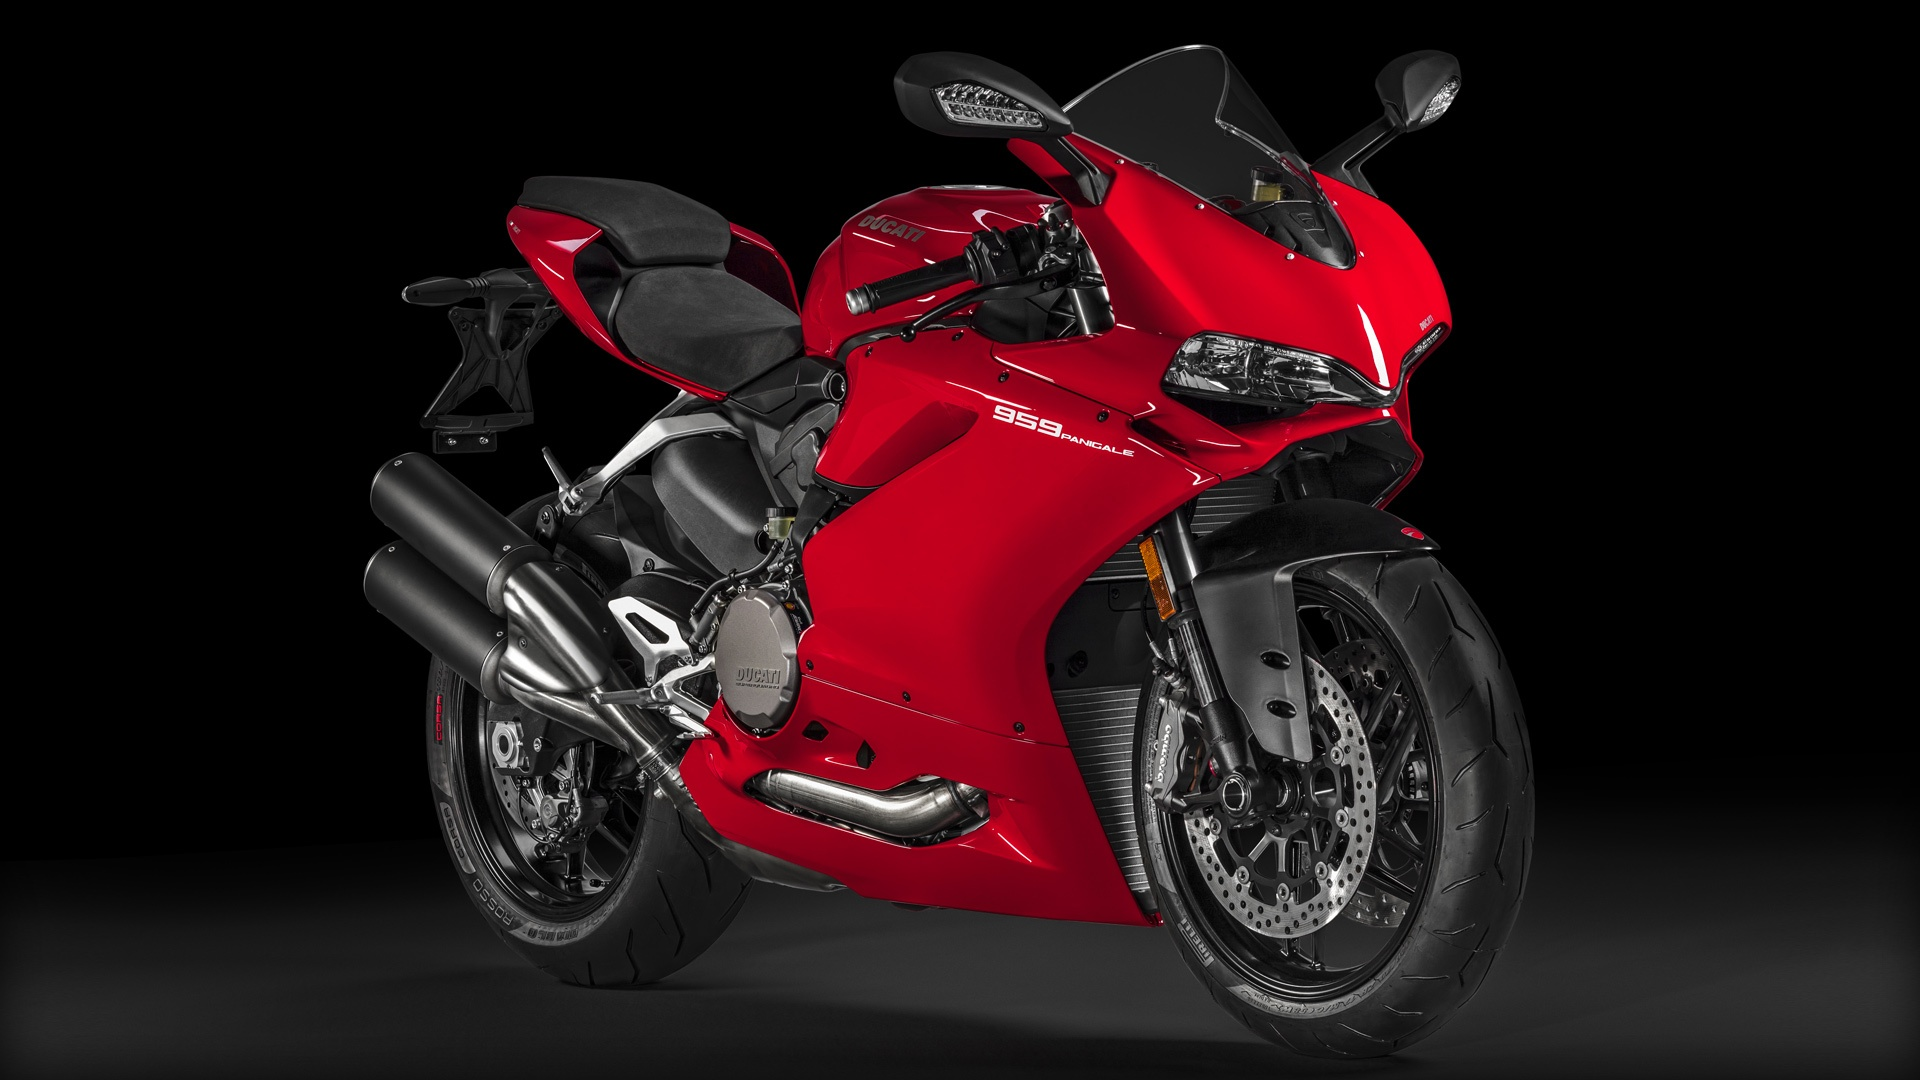 ducati 959 panigale for sale uk ducati manchester. Black Bedroom Furniture Sets. Home Design Ideas